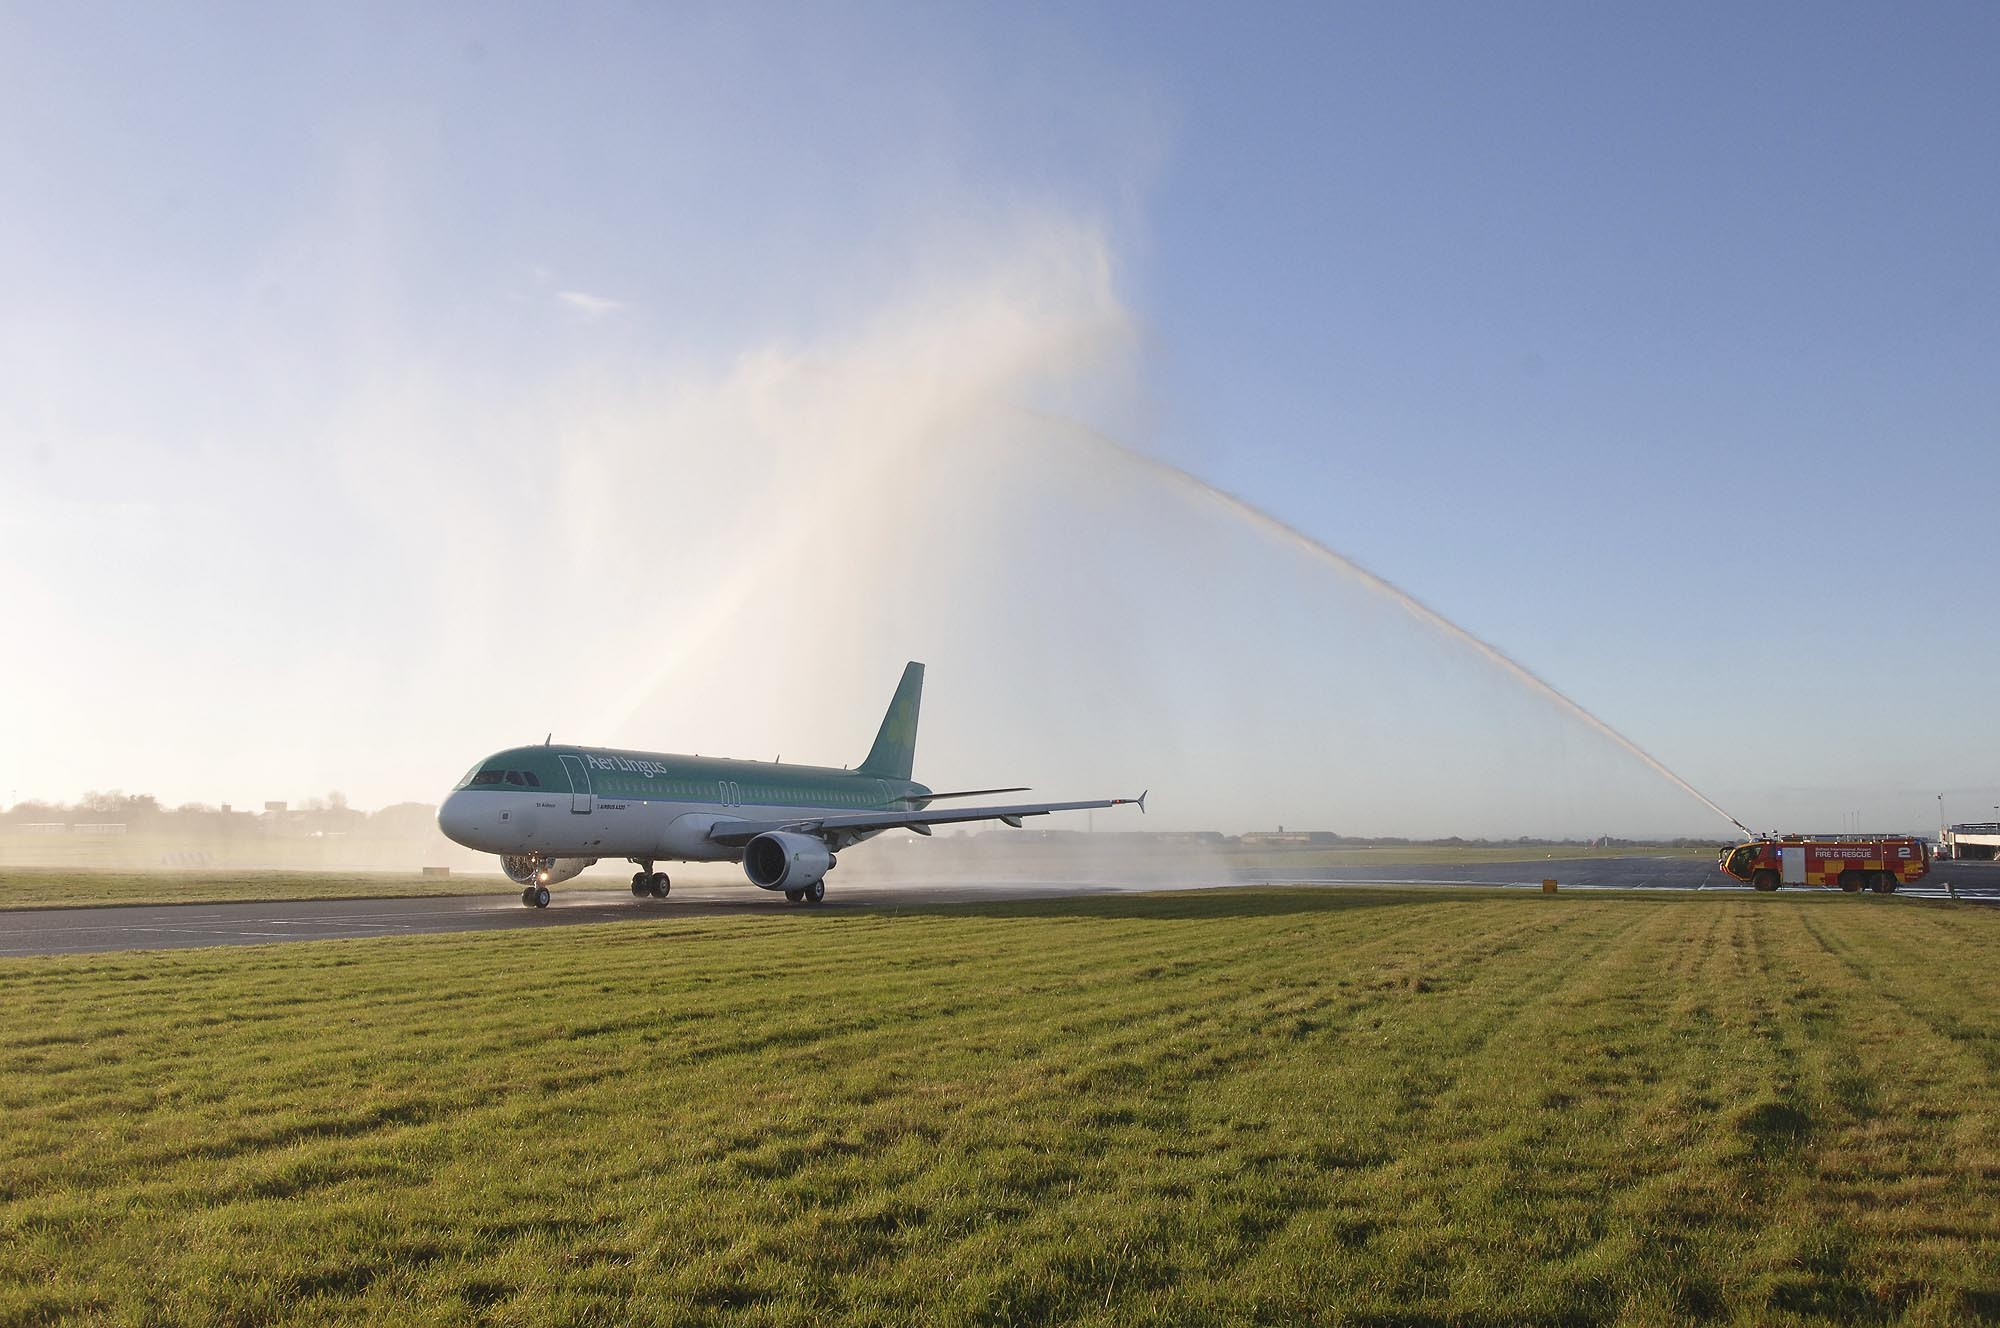 AER LINGUS TO CONNECT BELFAST WITH THE US AND CARIBBEAN VIA MANCHESTER, WITH FOUR NEW DIRECT TRANSATLANTIC ROUTES